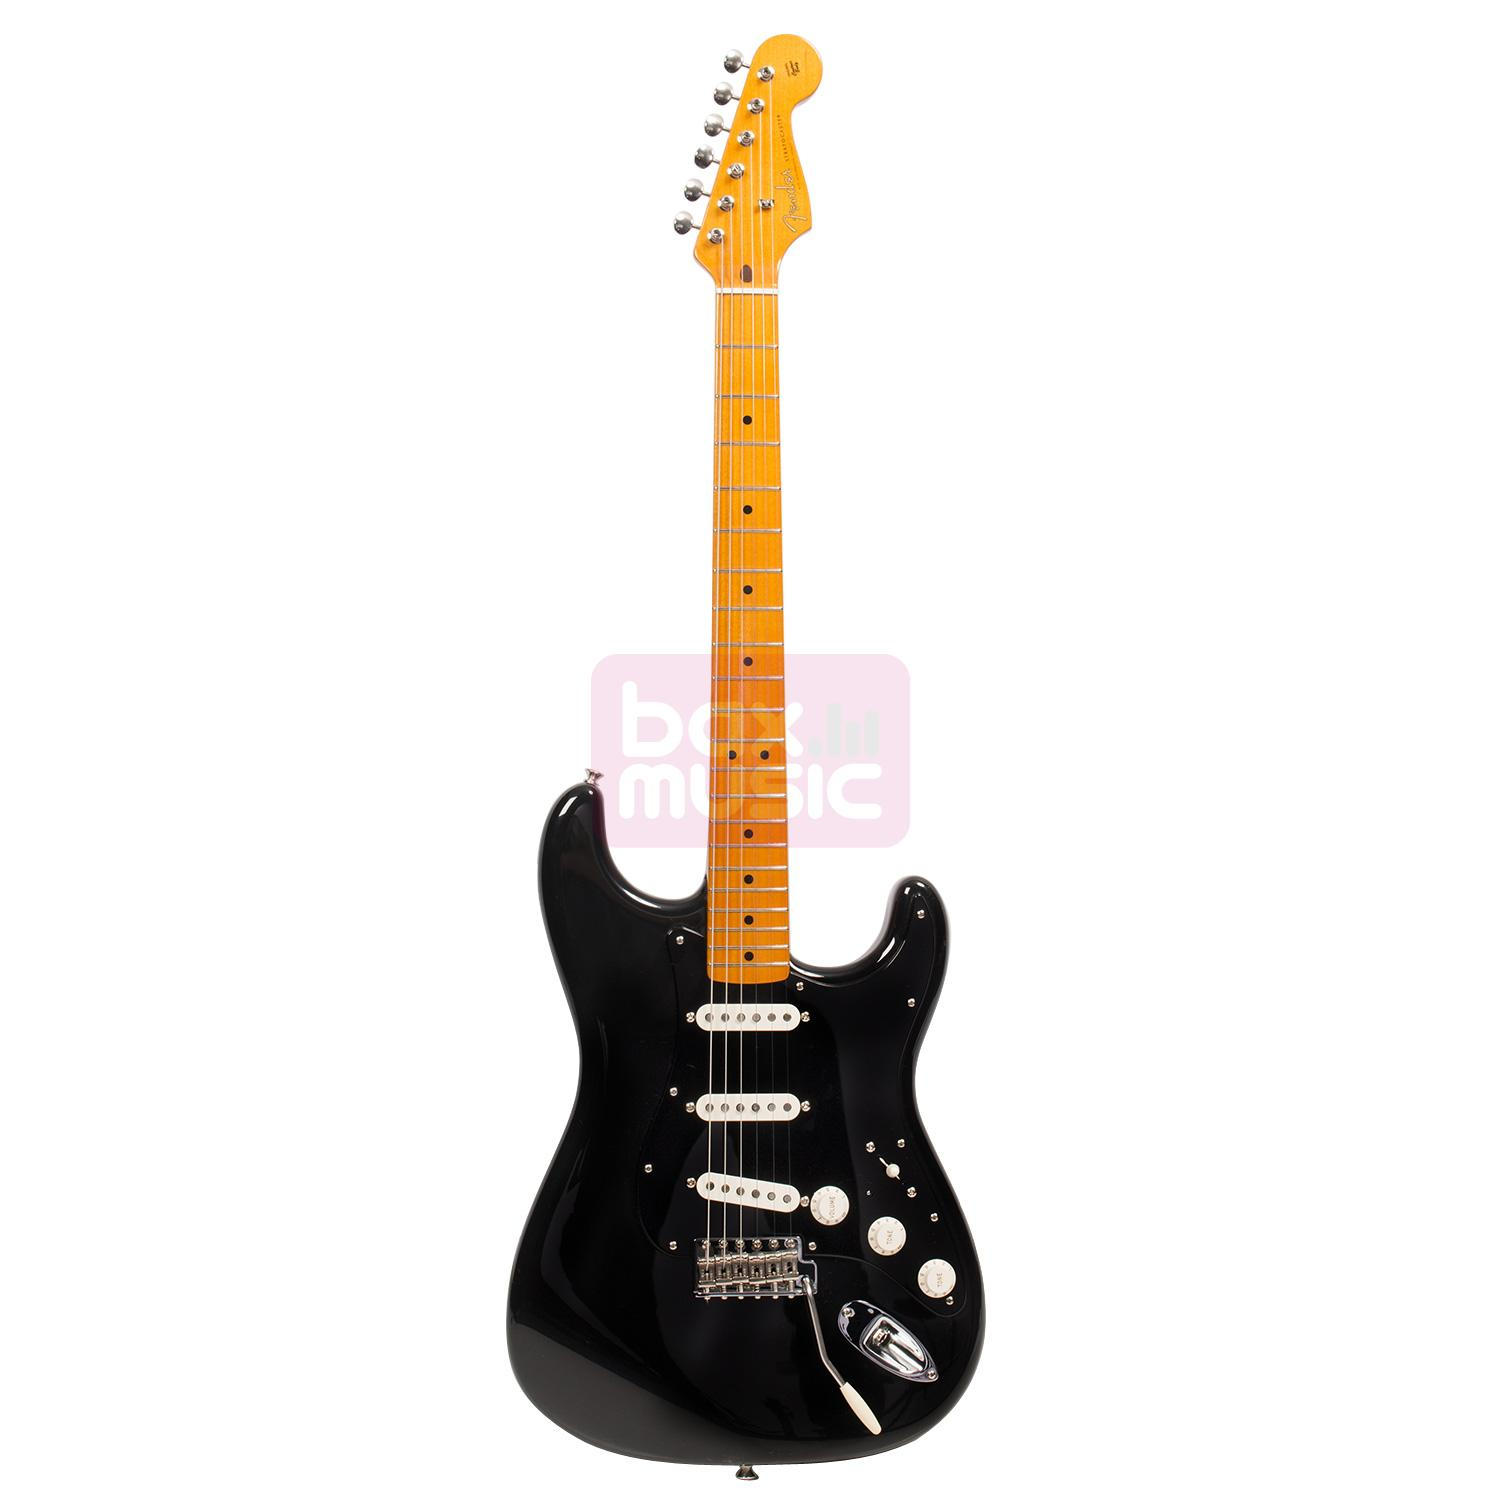 Fender Custom Shop David Gilmour Signature Stratocaster NOS MN